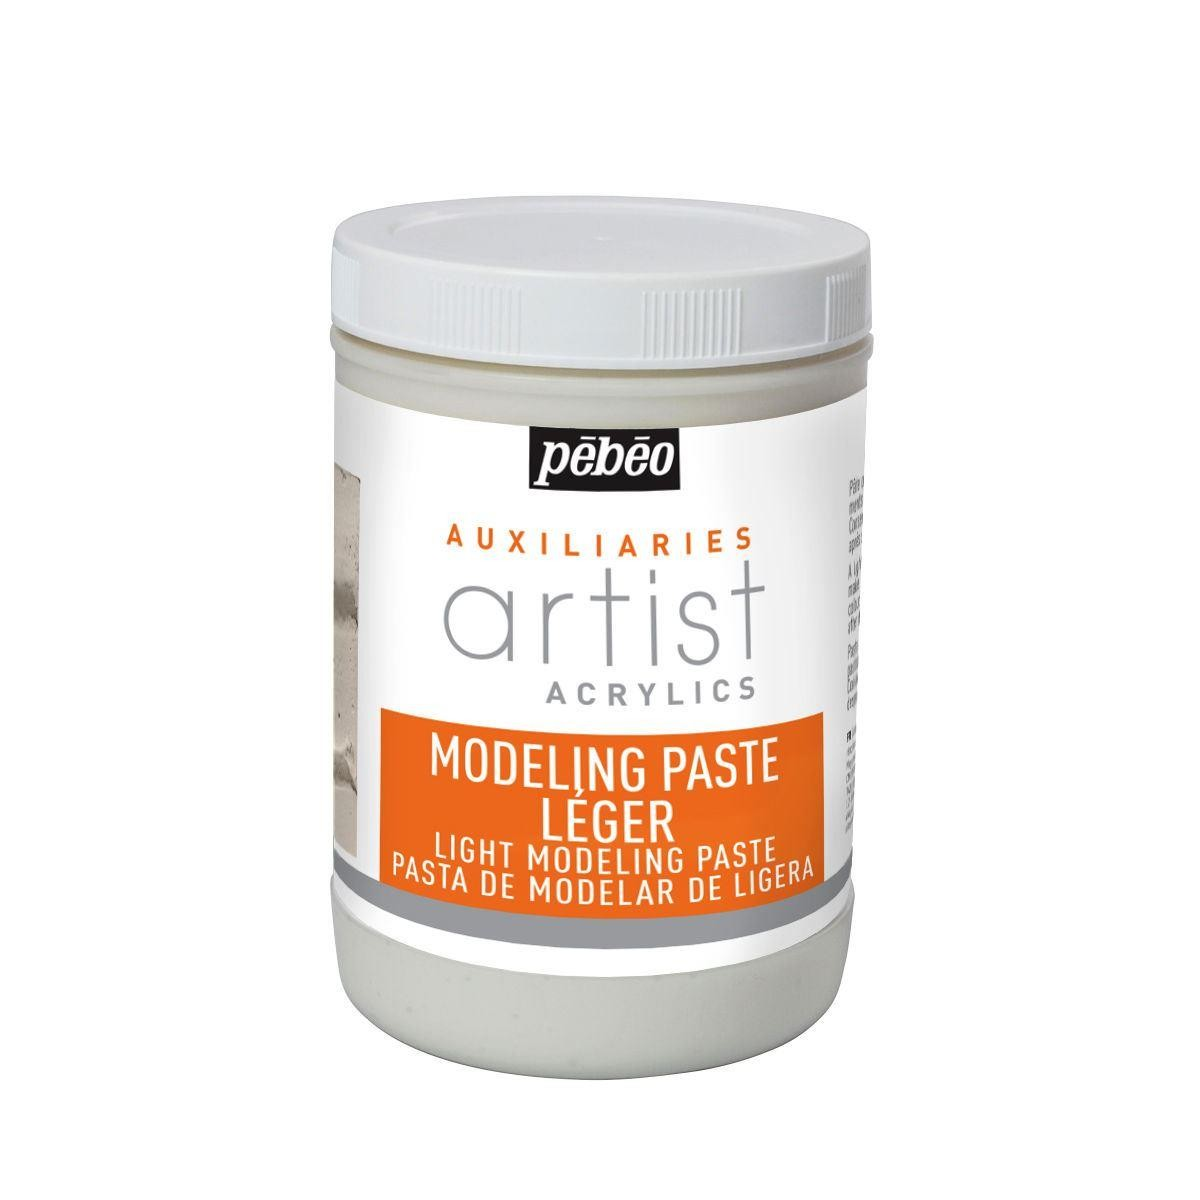 Pebeo artists acrylics light moulding paste 1 litre